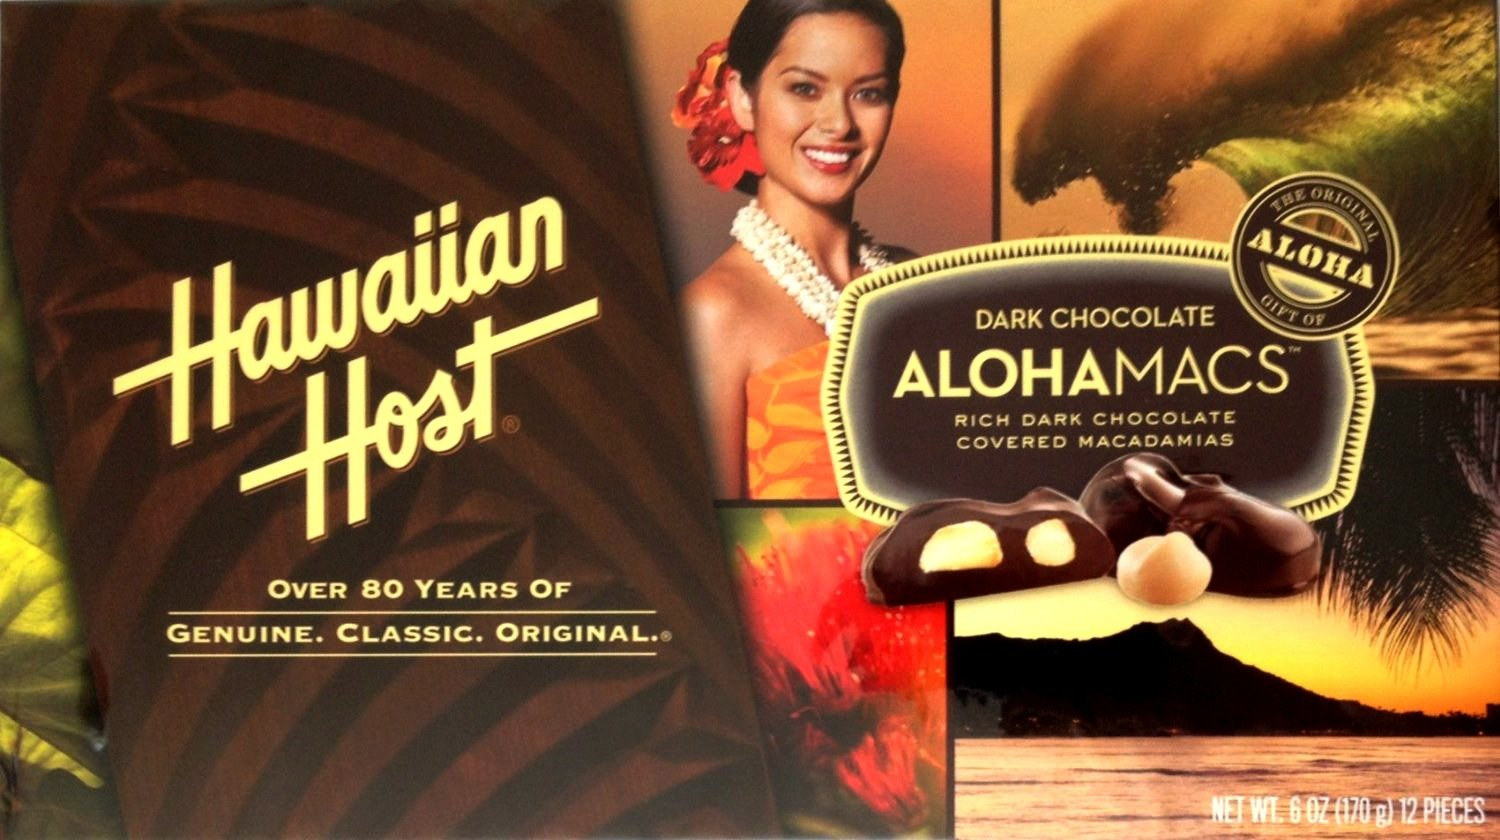 Hawaiian Host Alohamacs Dark Chocolate Covered Macadamia Nuts (6 oz Boxes) (6 Boxes) by Hawaiian Host (Image #2)